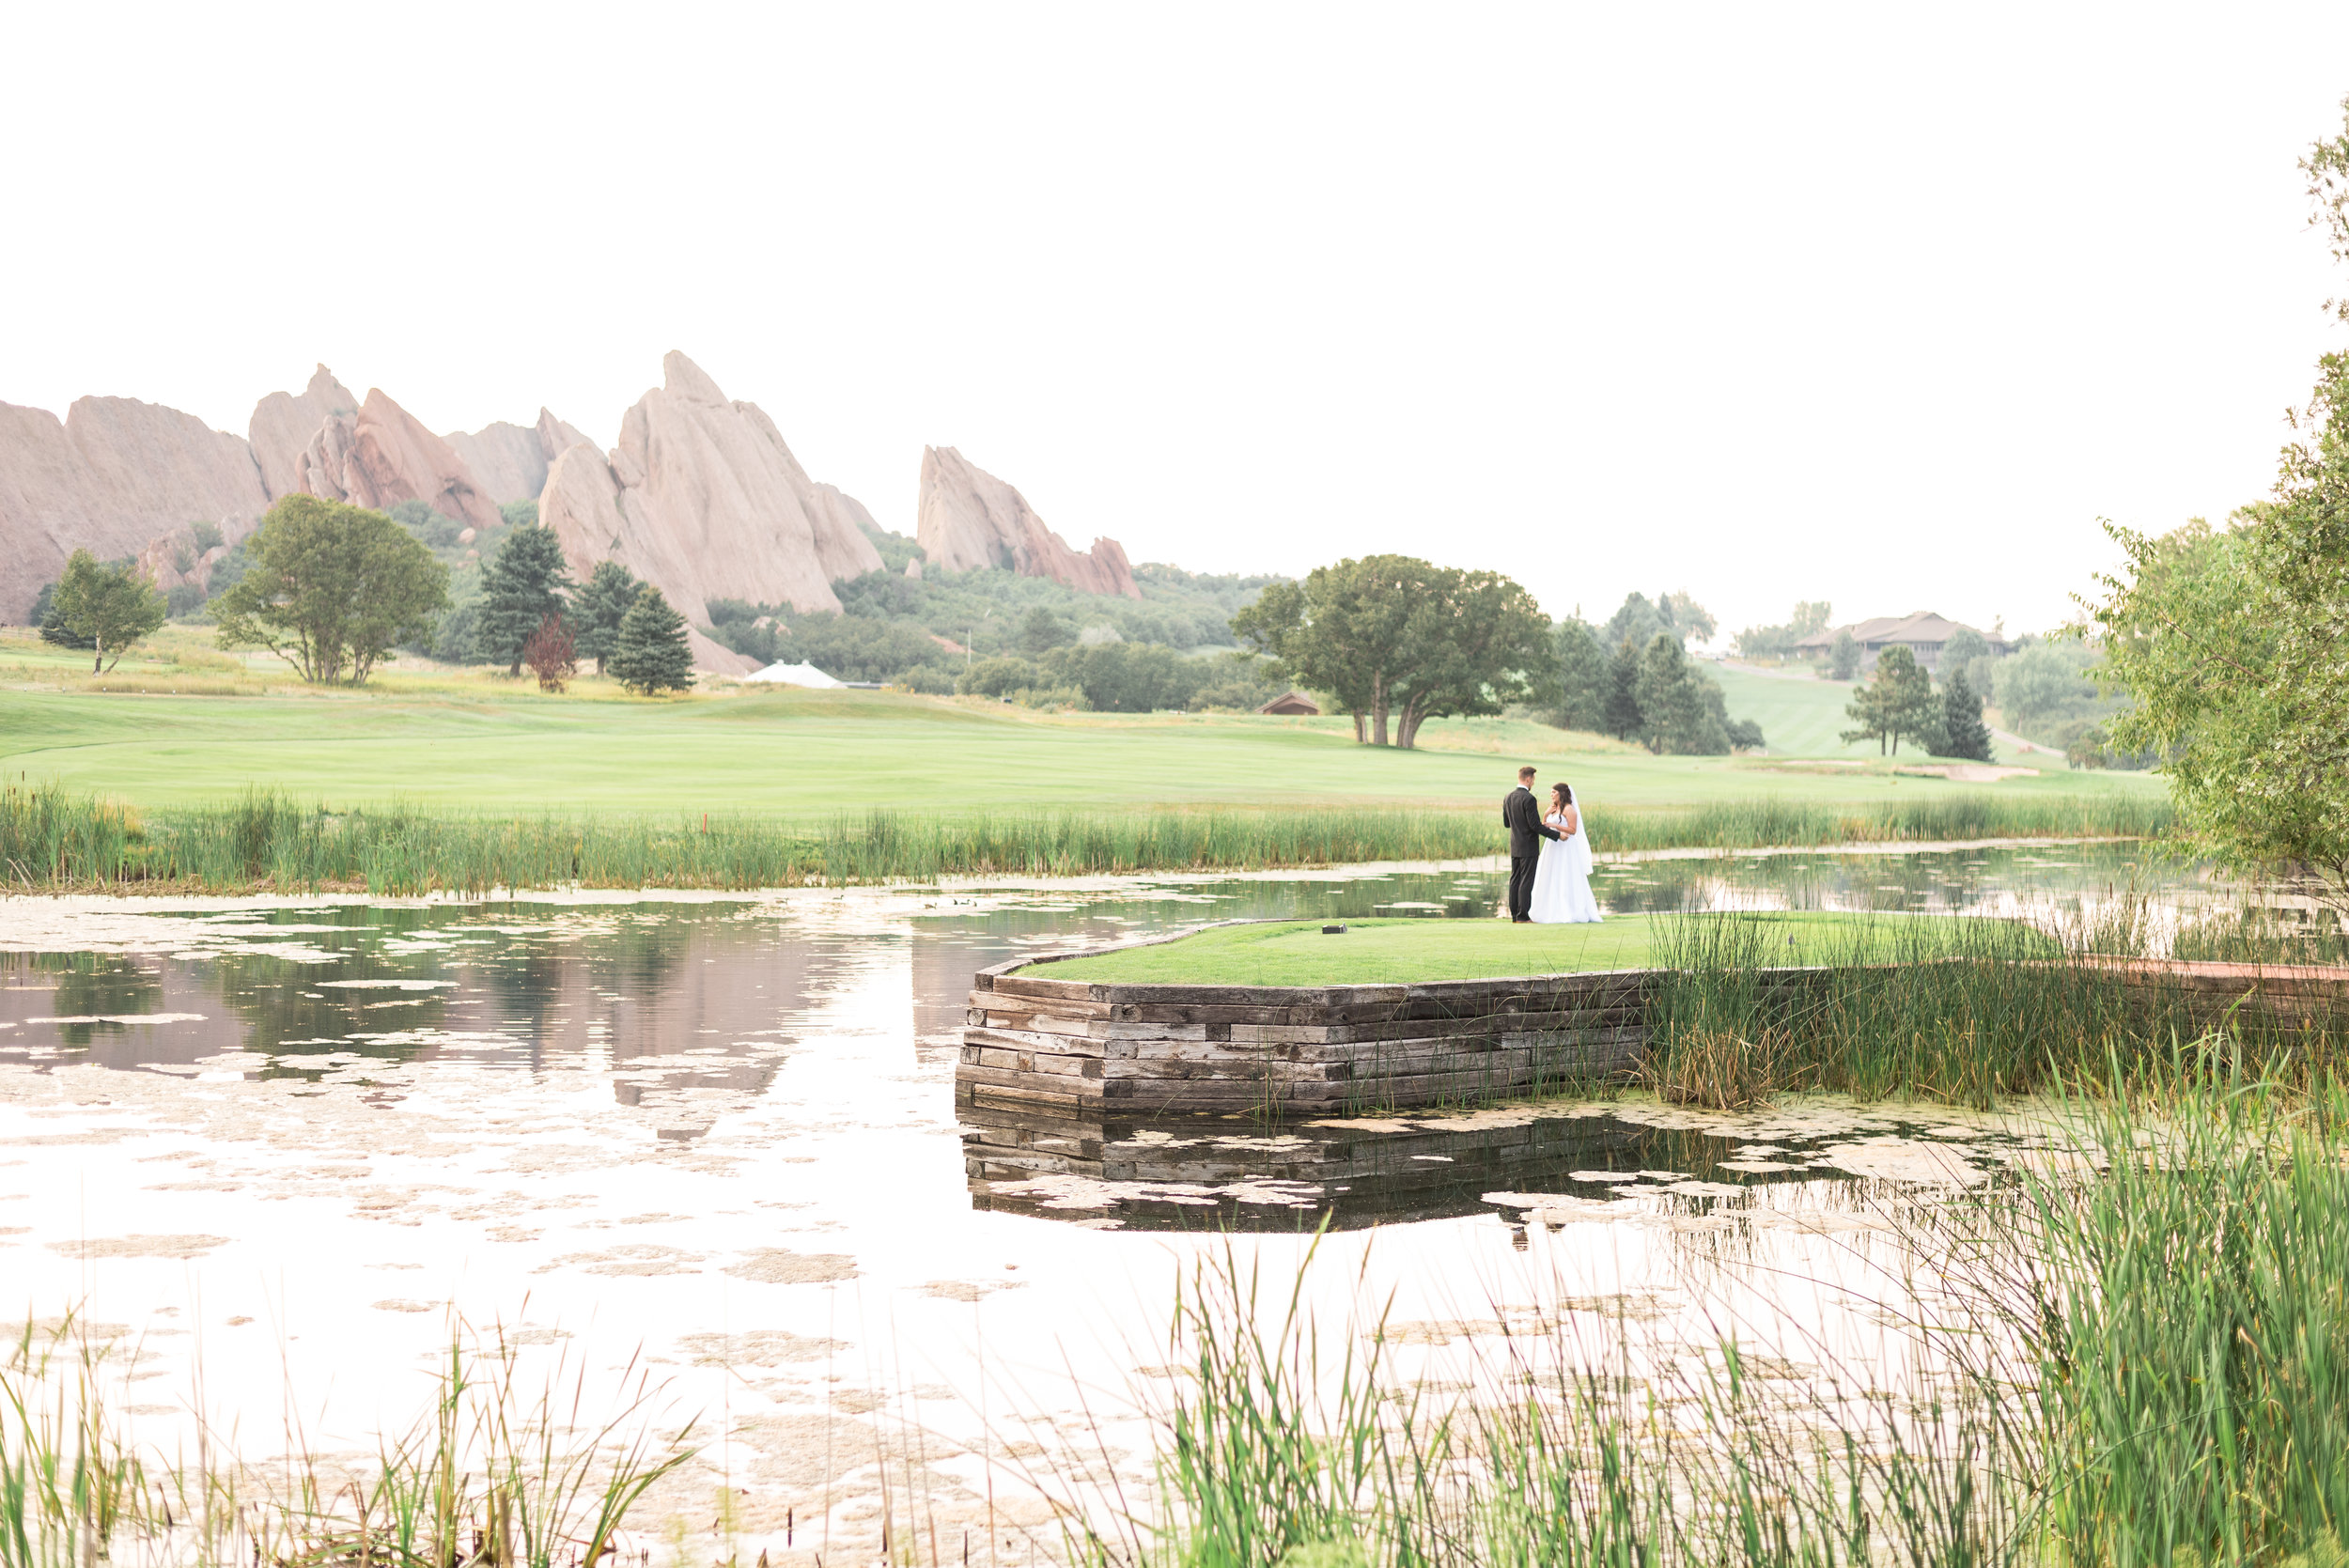 Wedding at Arrowhead Golf Course, romantic wedding photography, classic, timeless wedding photography, bride and groom poses